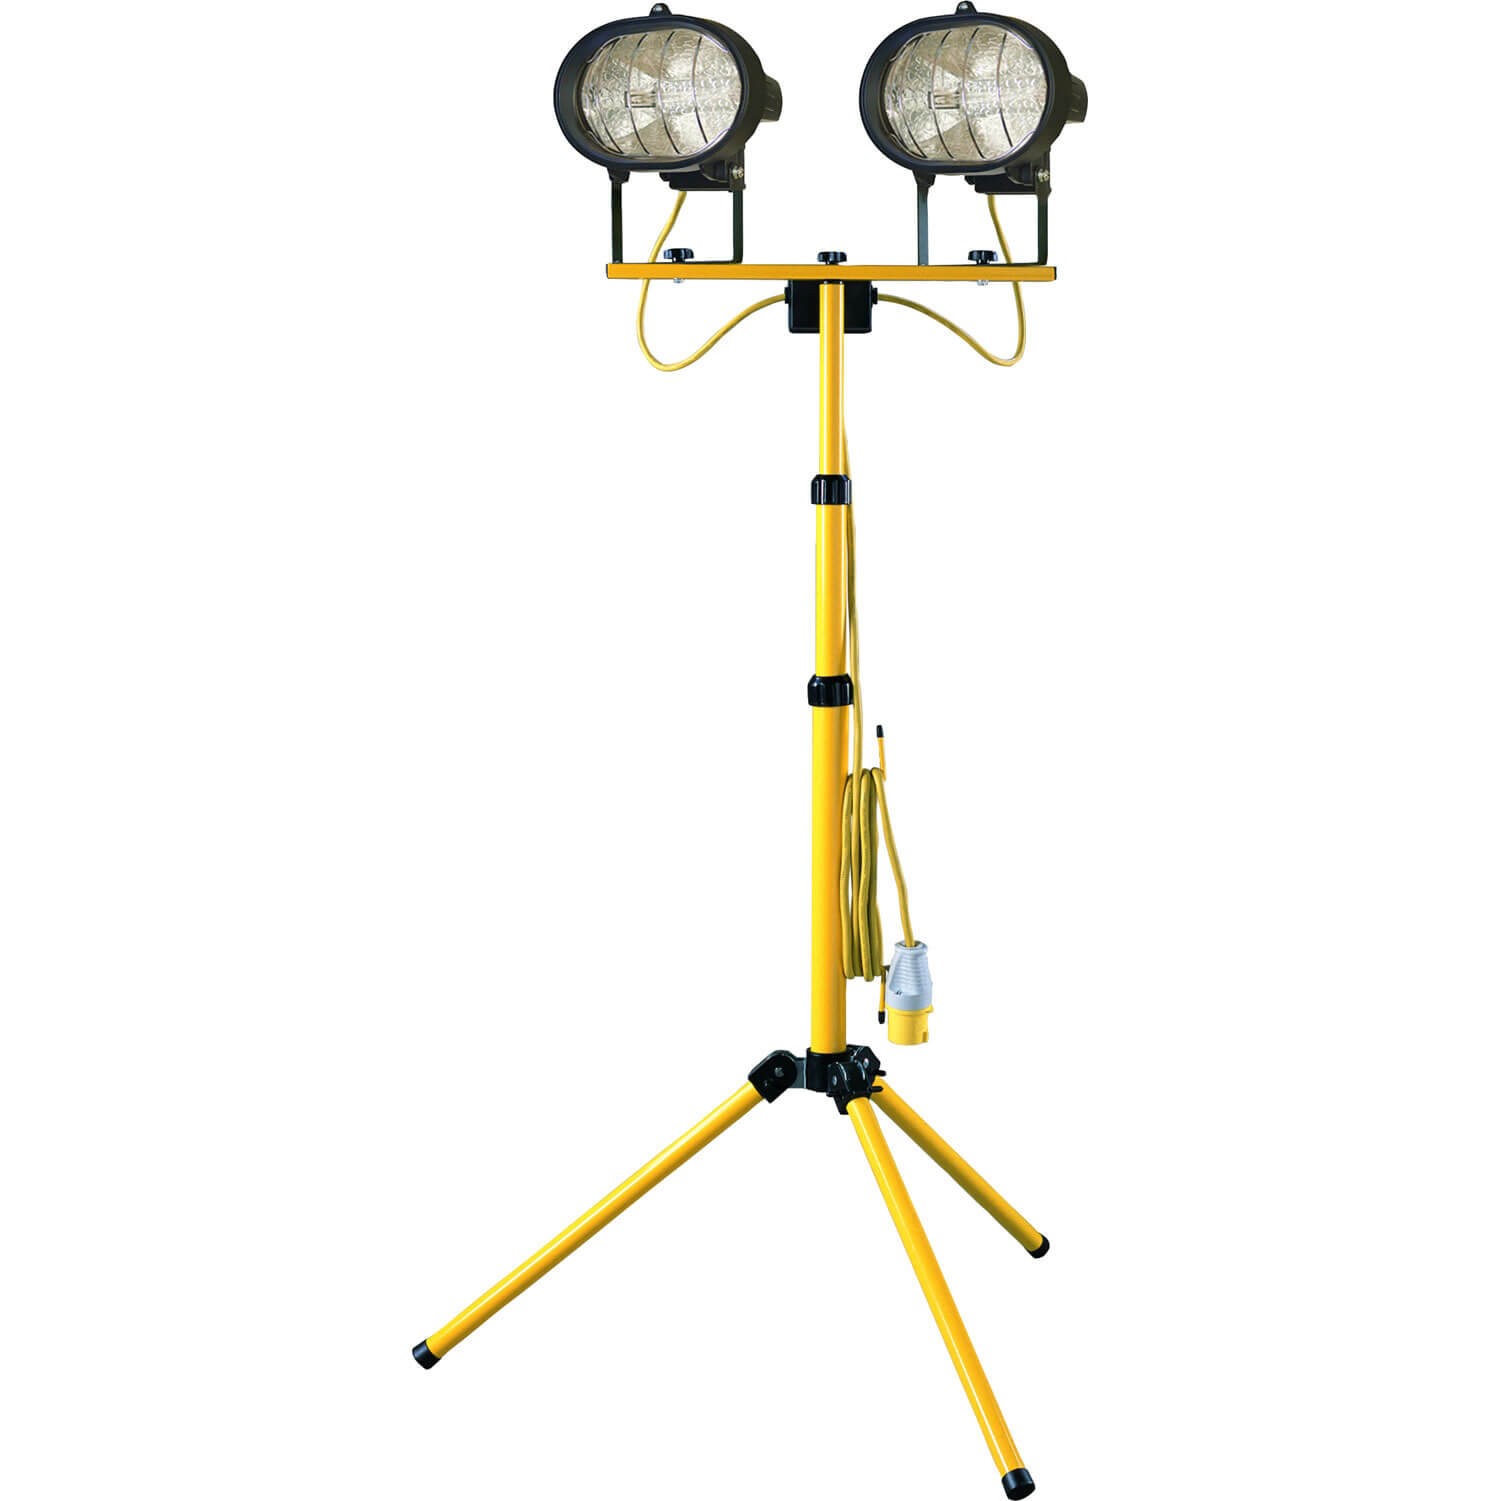 Image of Faithfull Halogen Twin Site Light with Adjustable Stand 1000w 110v